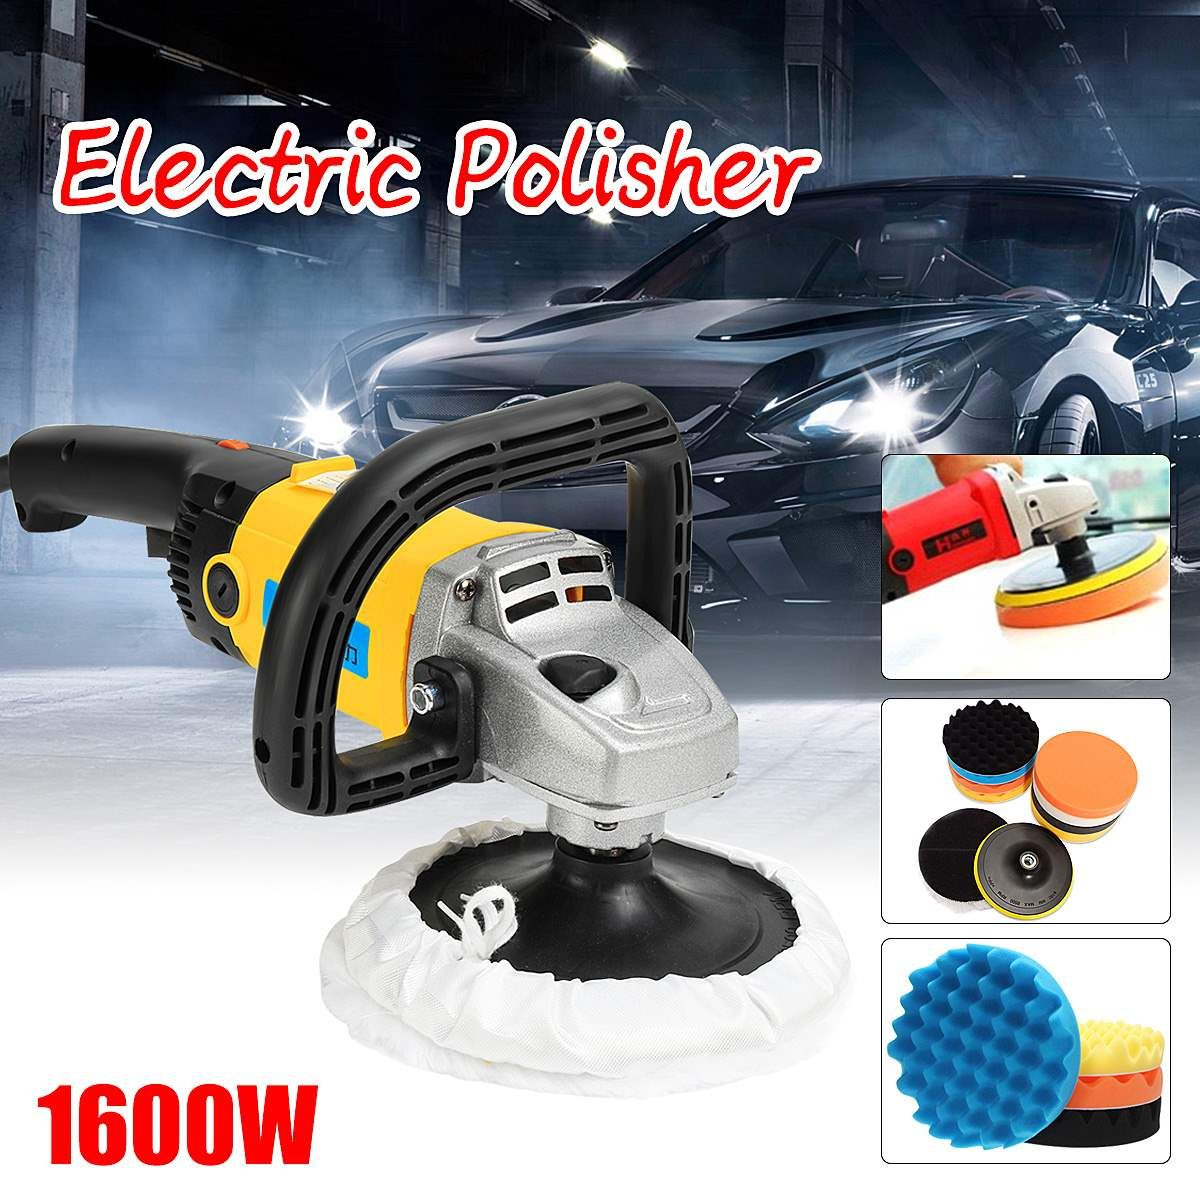 Electric Waxer 220V 1600W Polisher 1/8